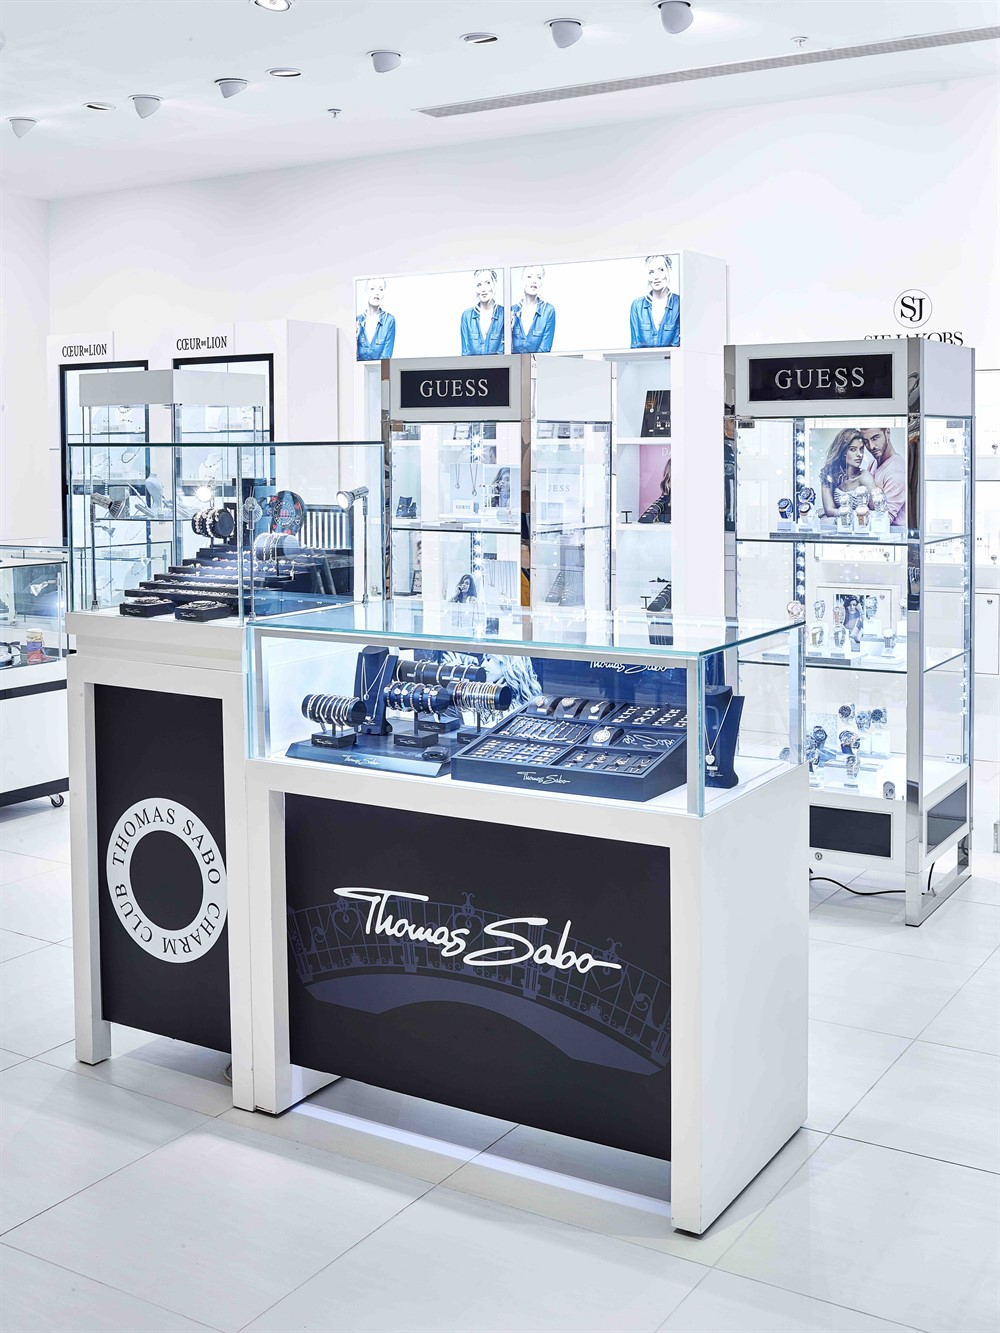 Shades Of Time - Thomas Sabo